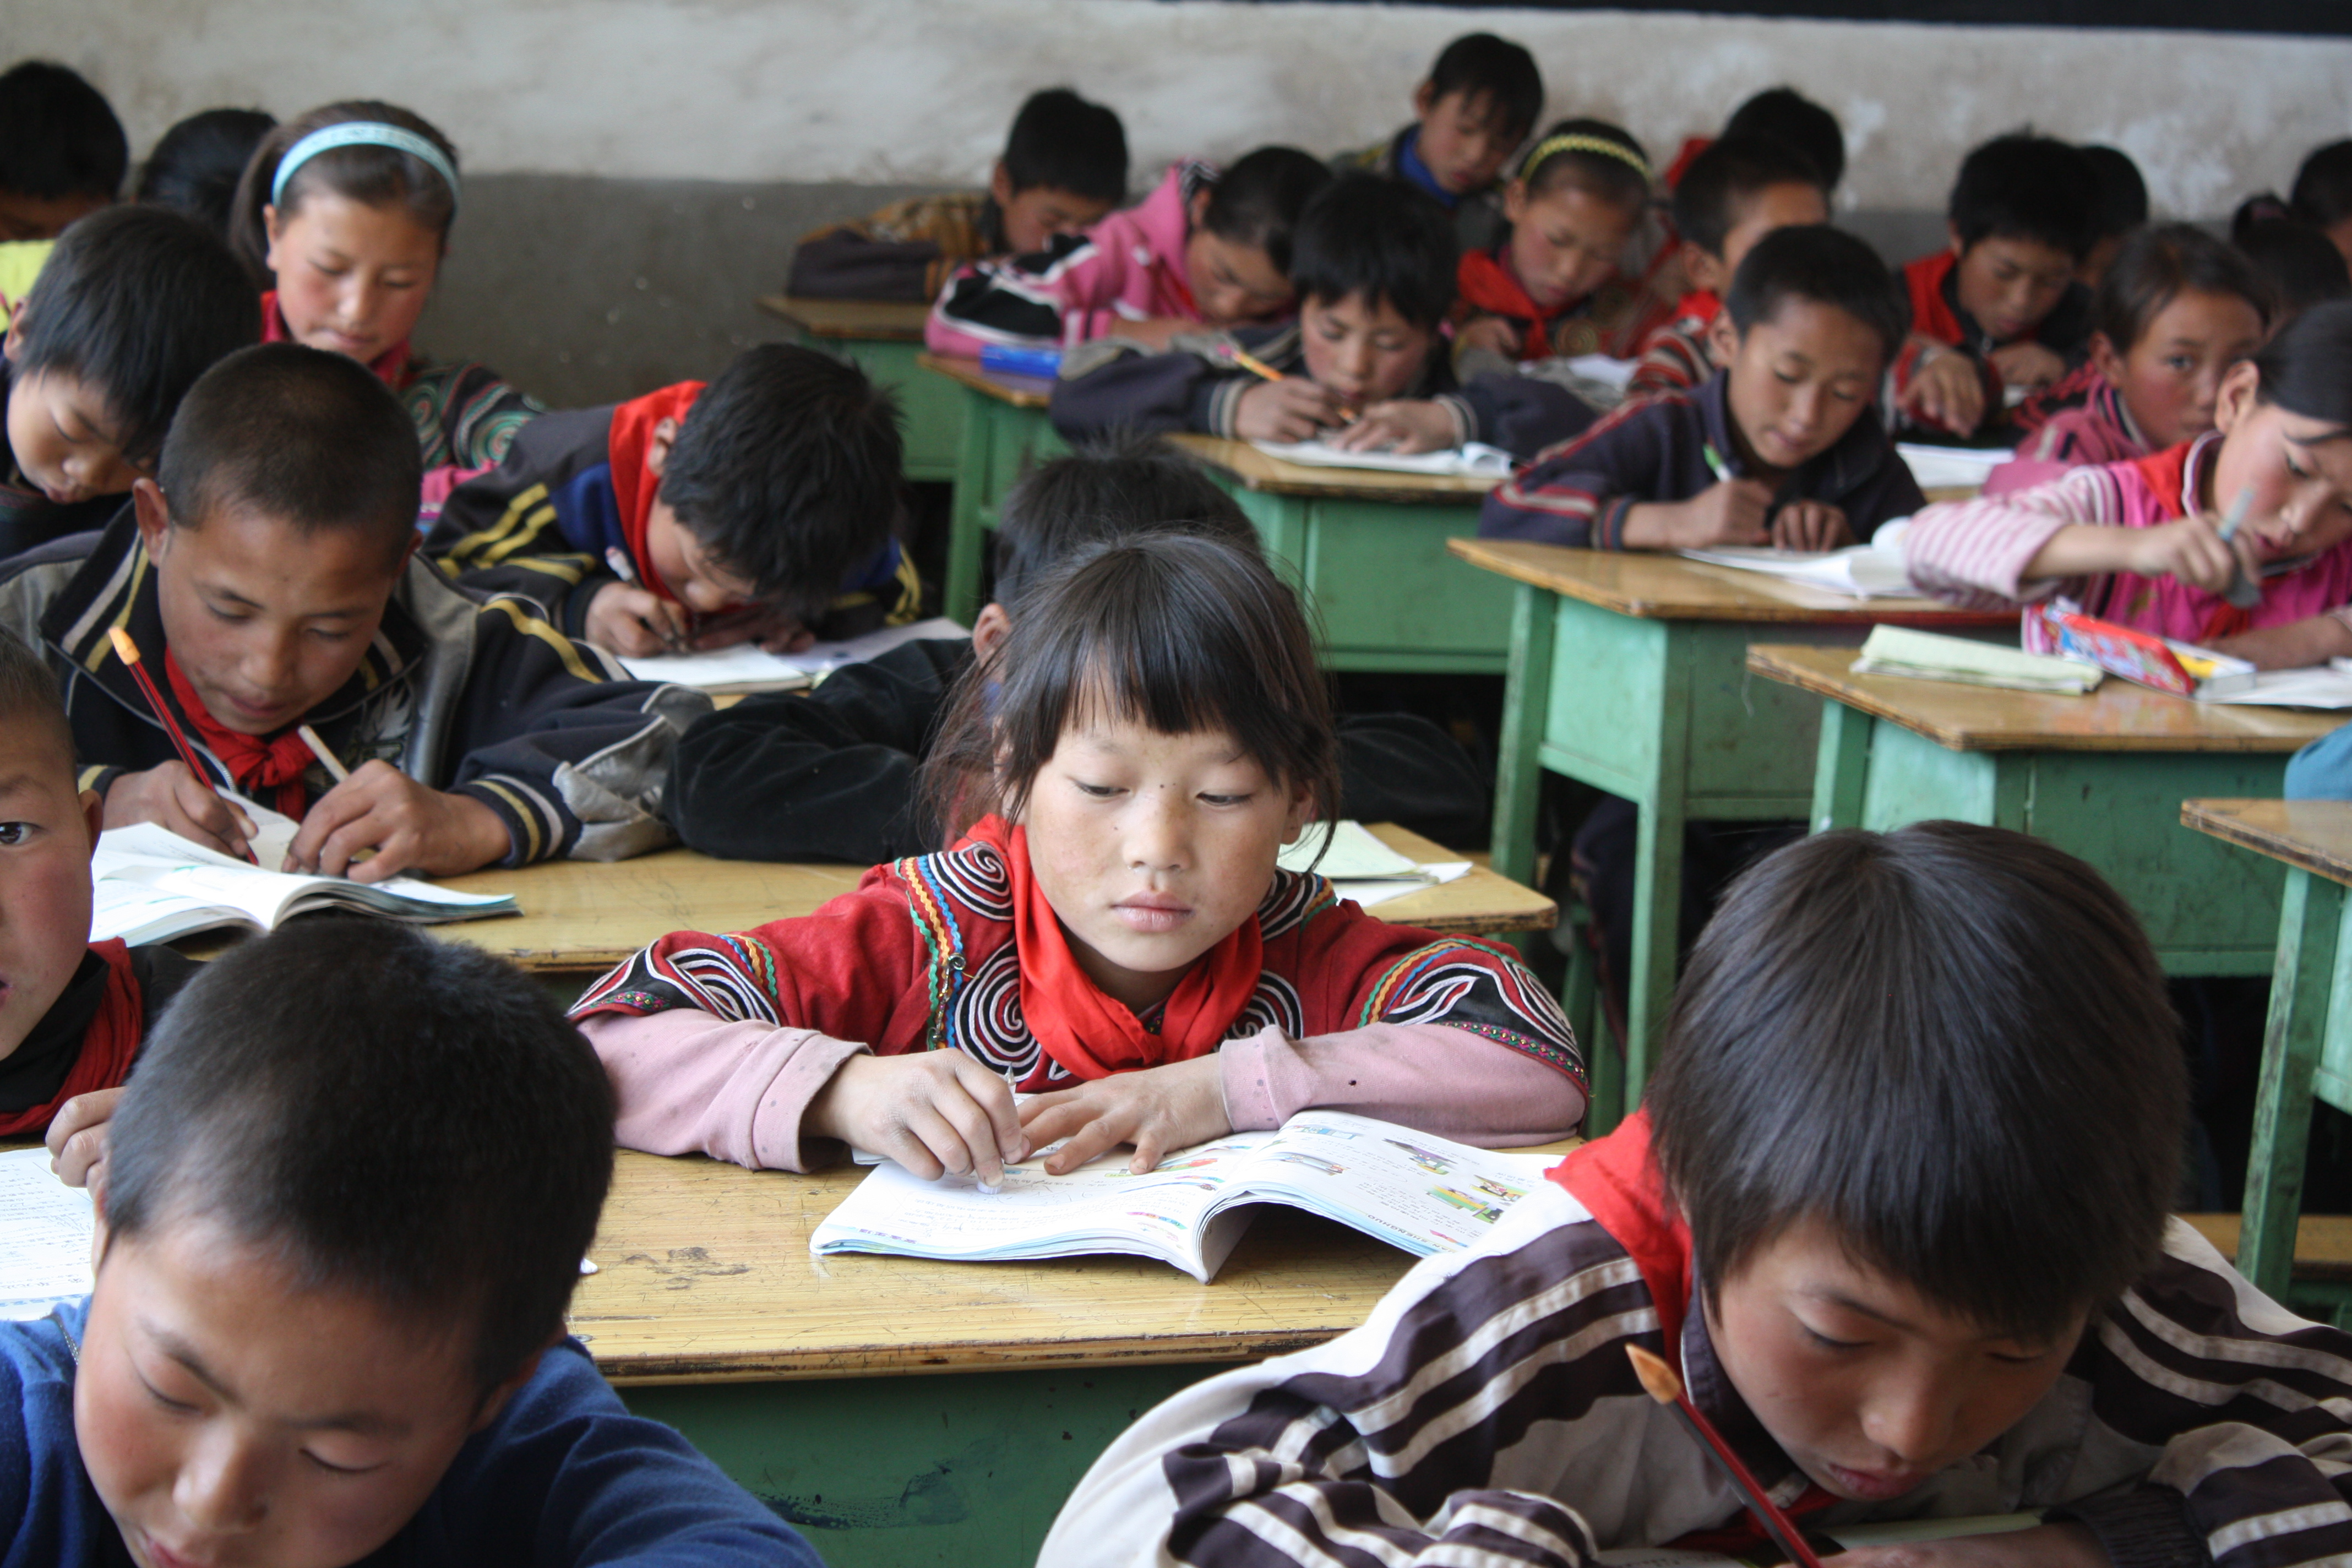 Children in a classroom taking a maths test